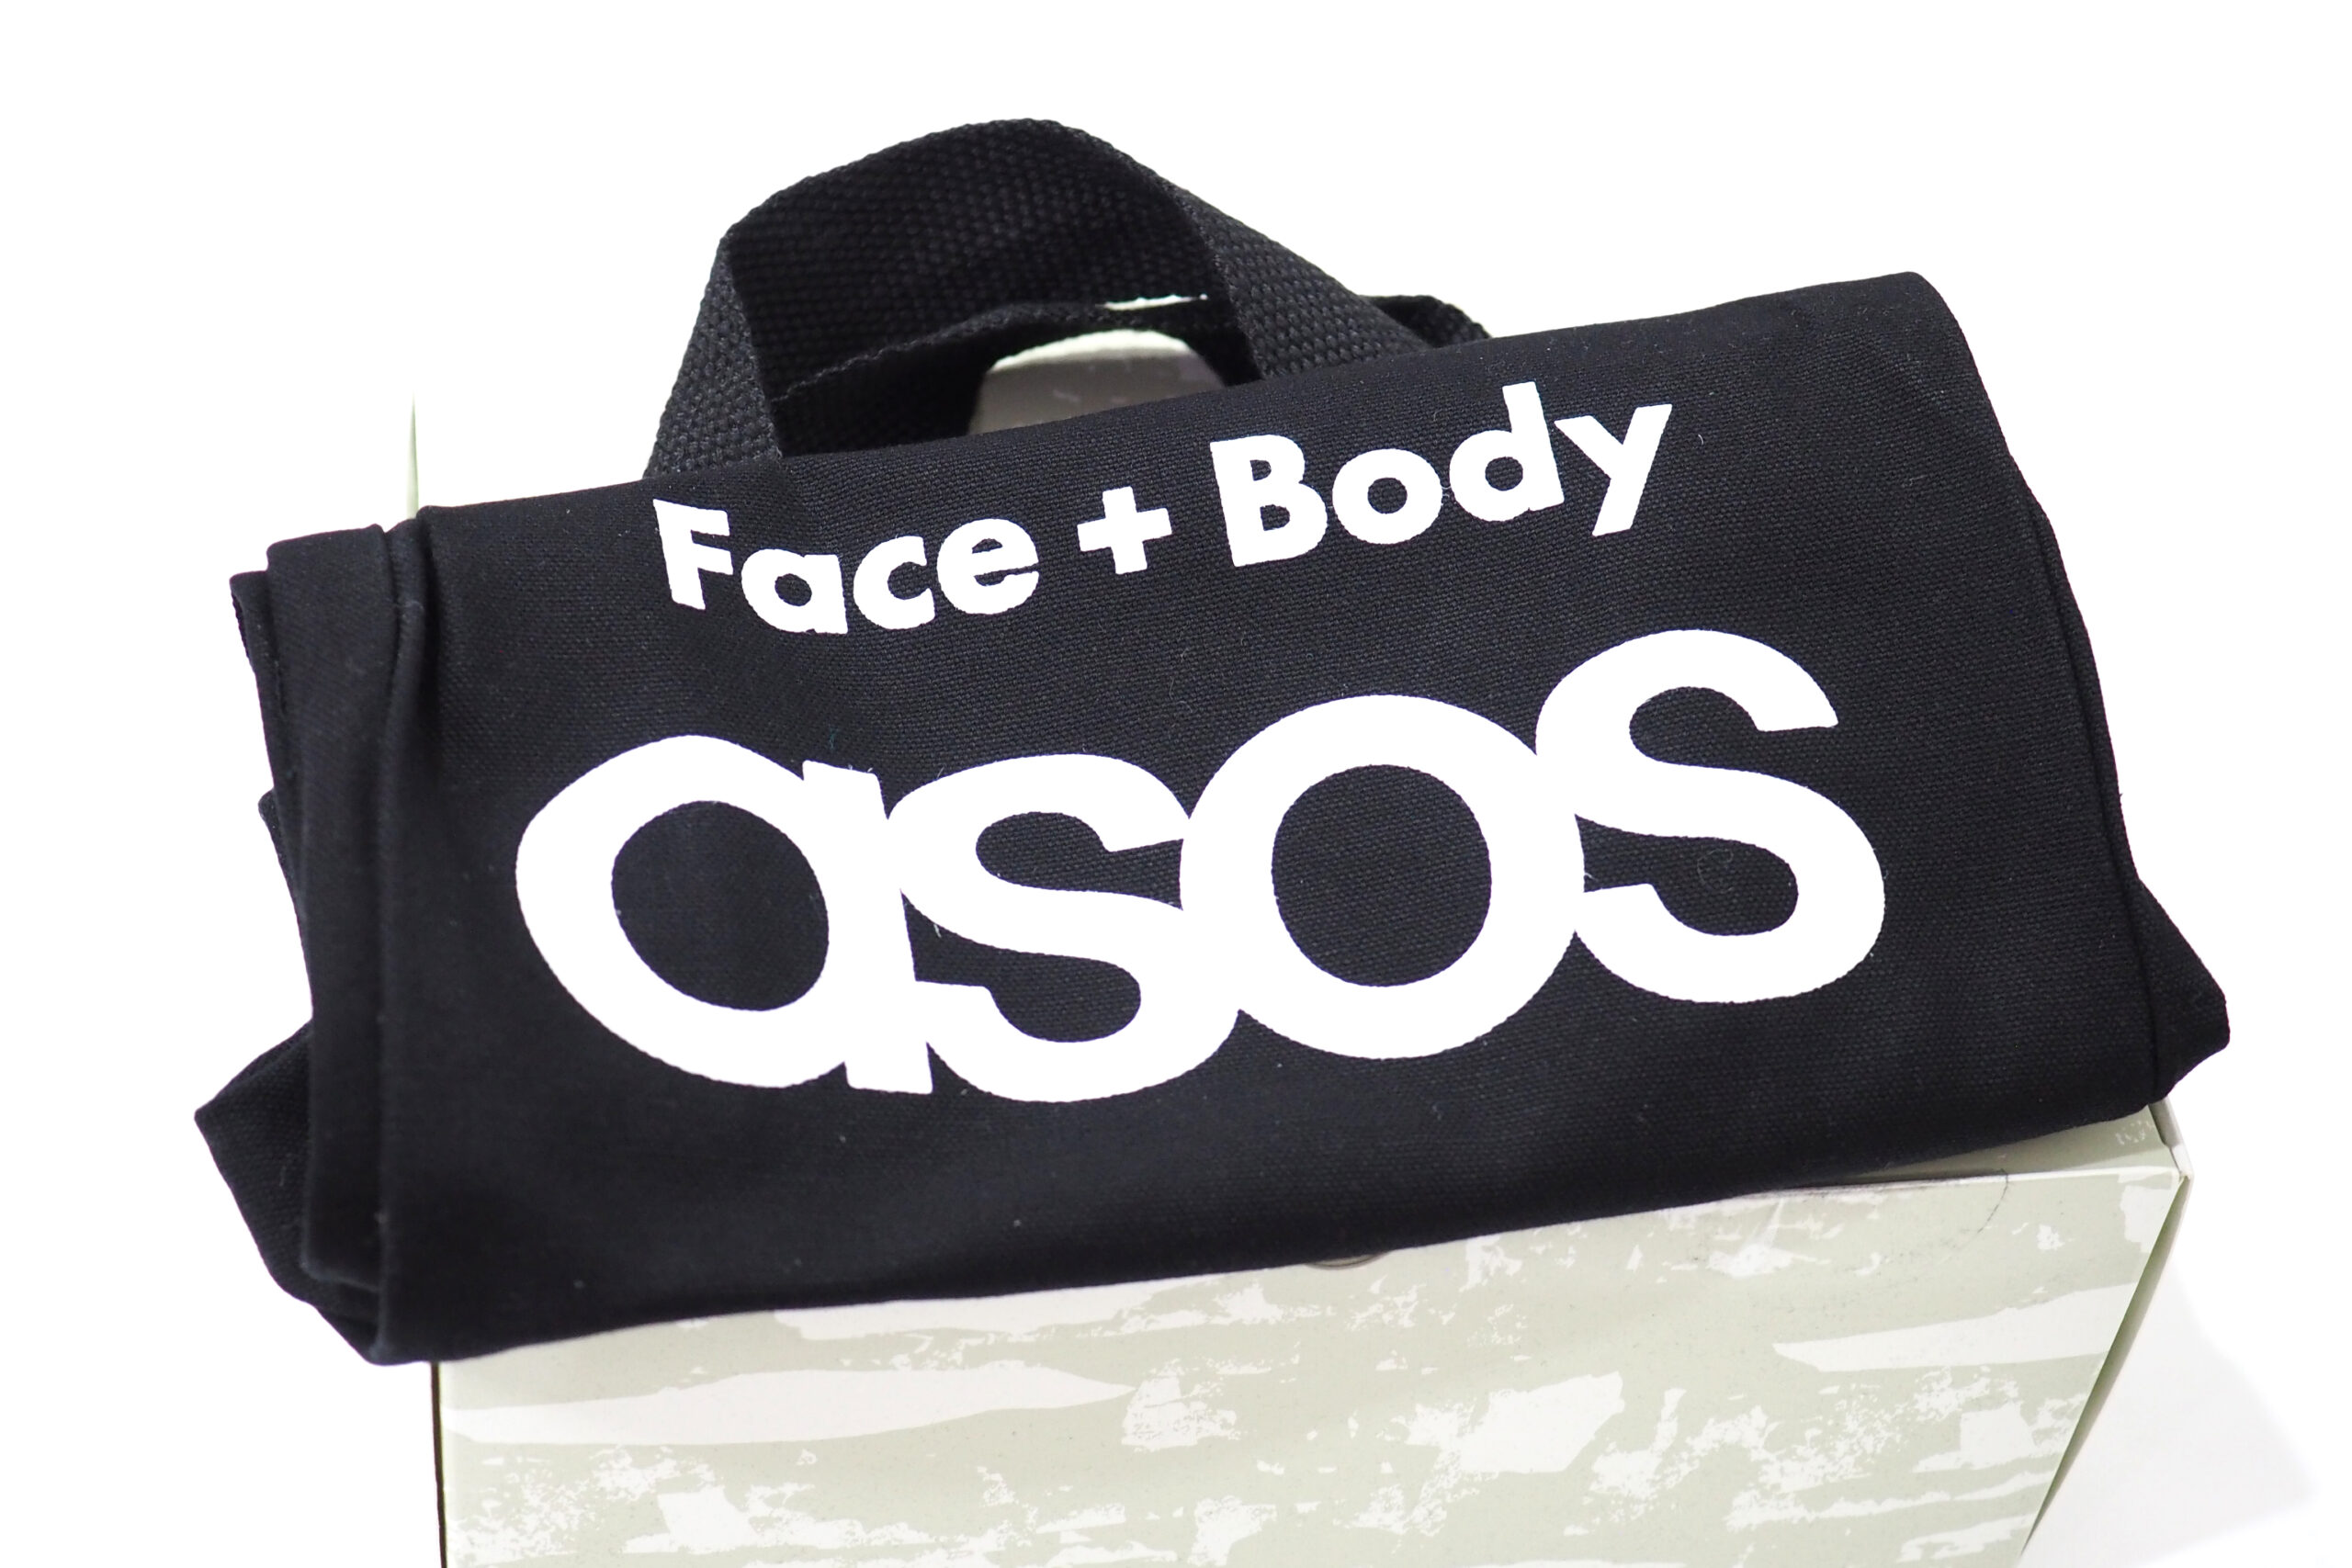 ASOS Grooming 12 Day Advent Calendar 2021 Unboxing and Review